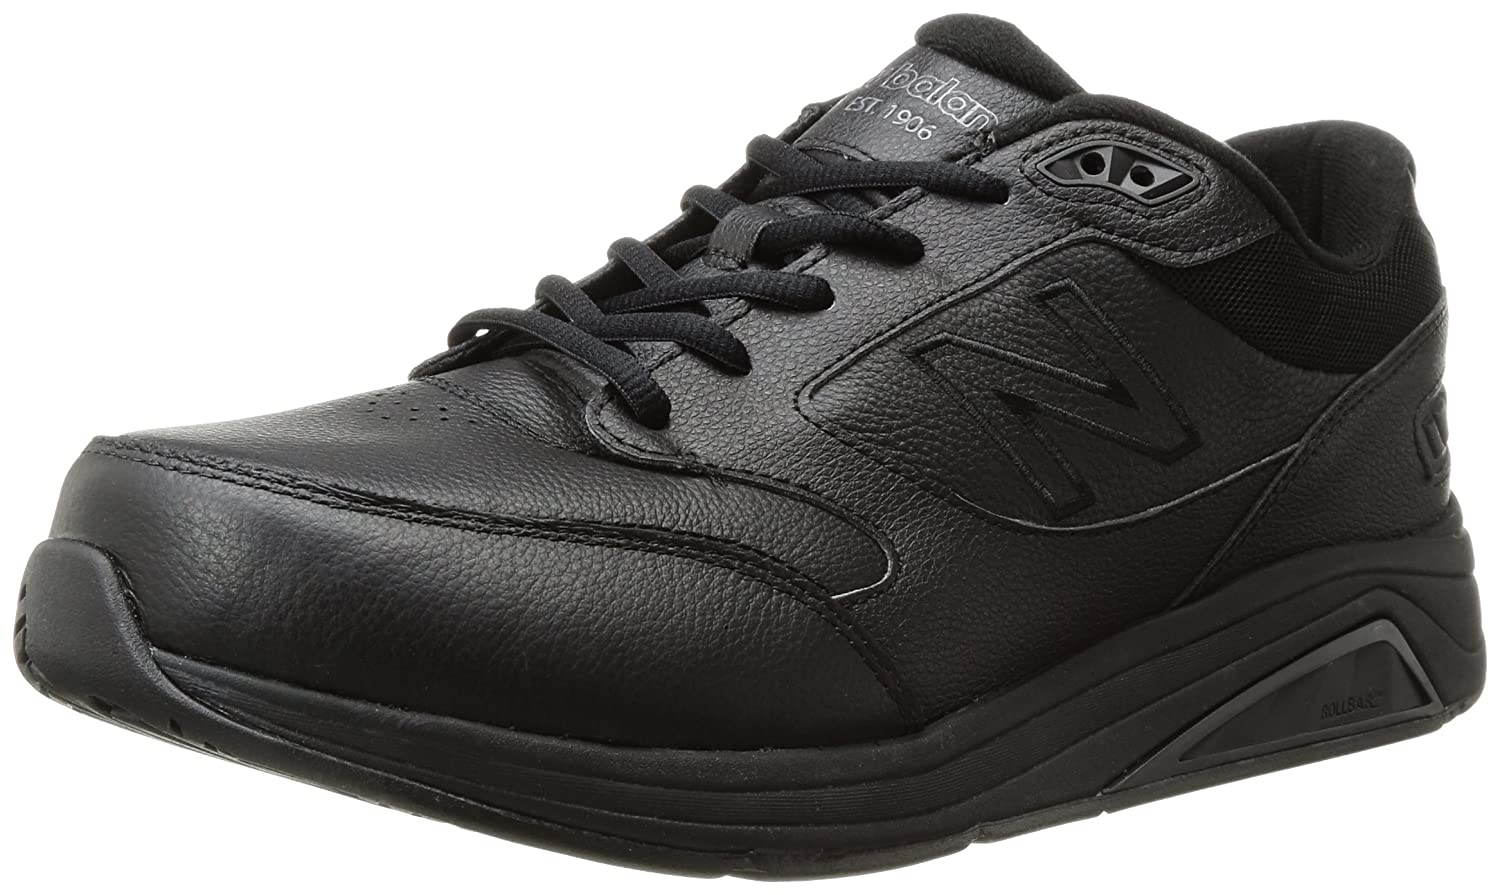 Mens Nuovo Equilibrio 928v3 eH6qwoTV5S